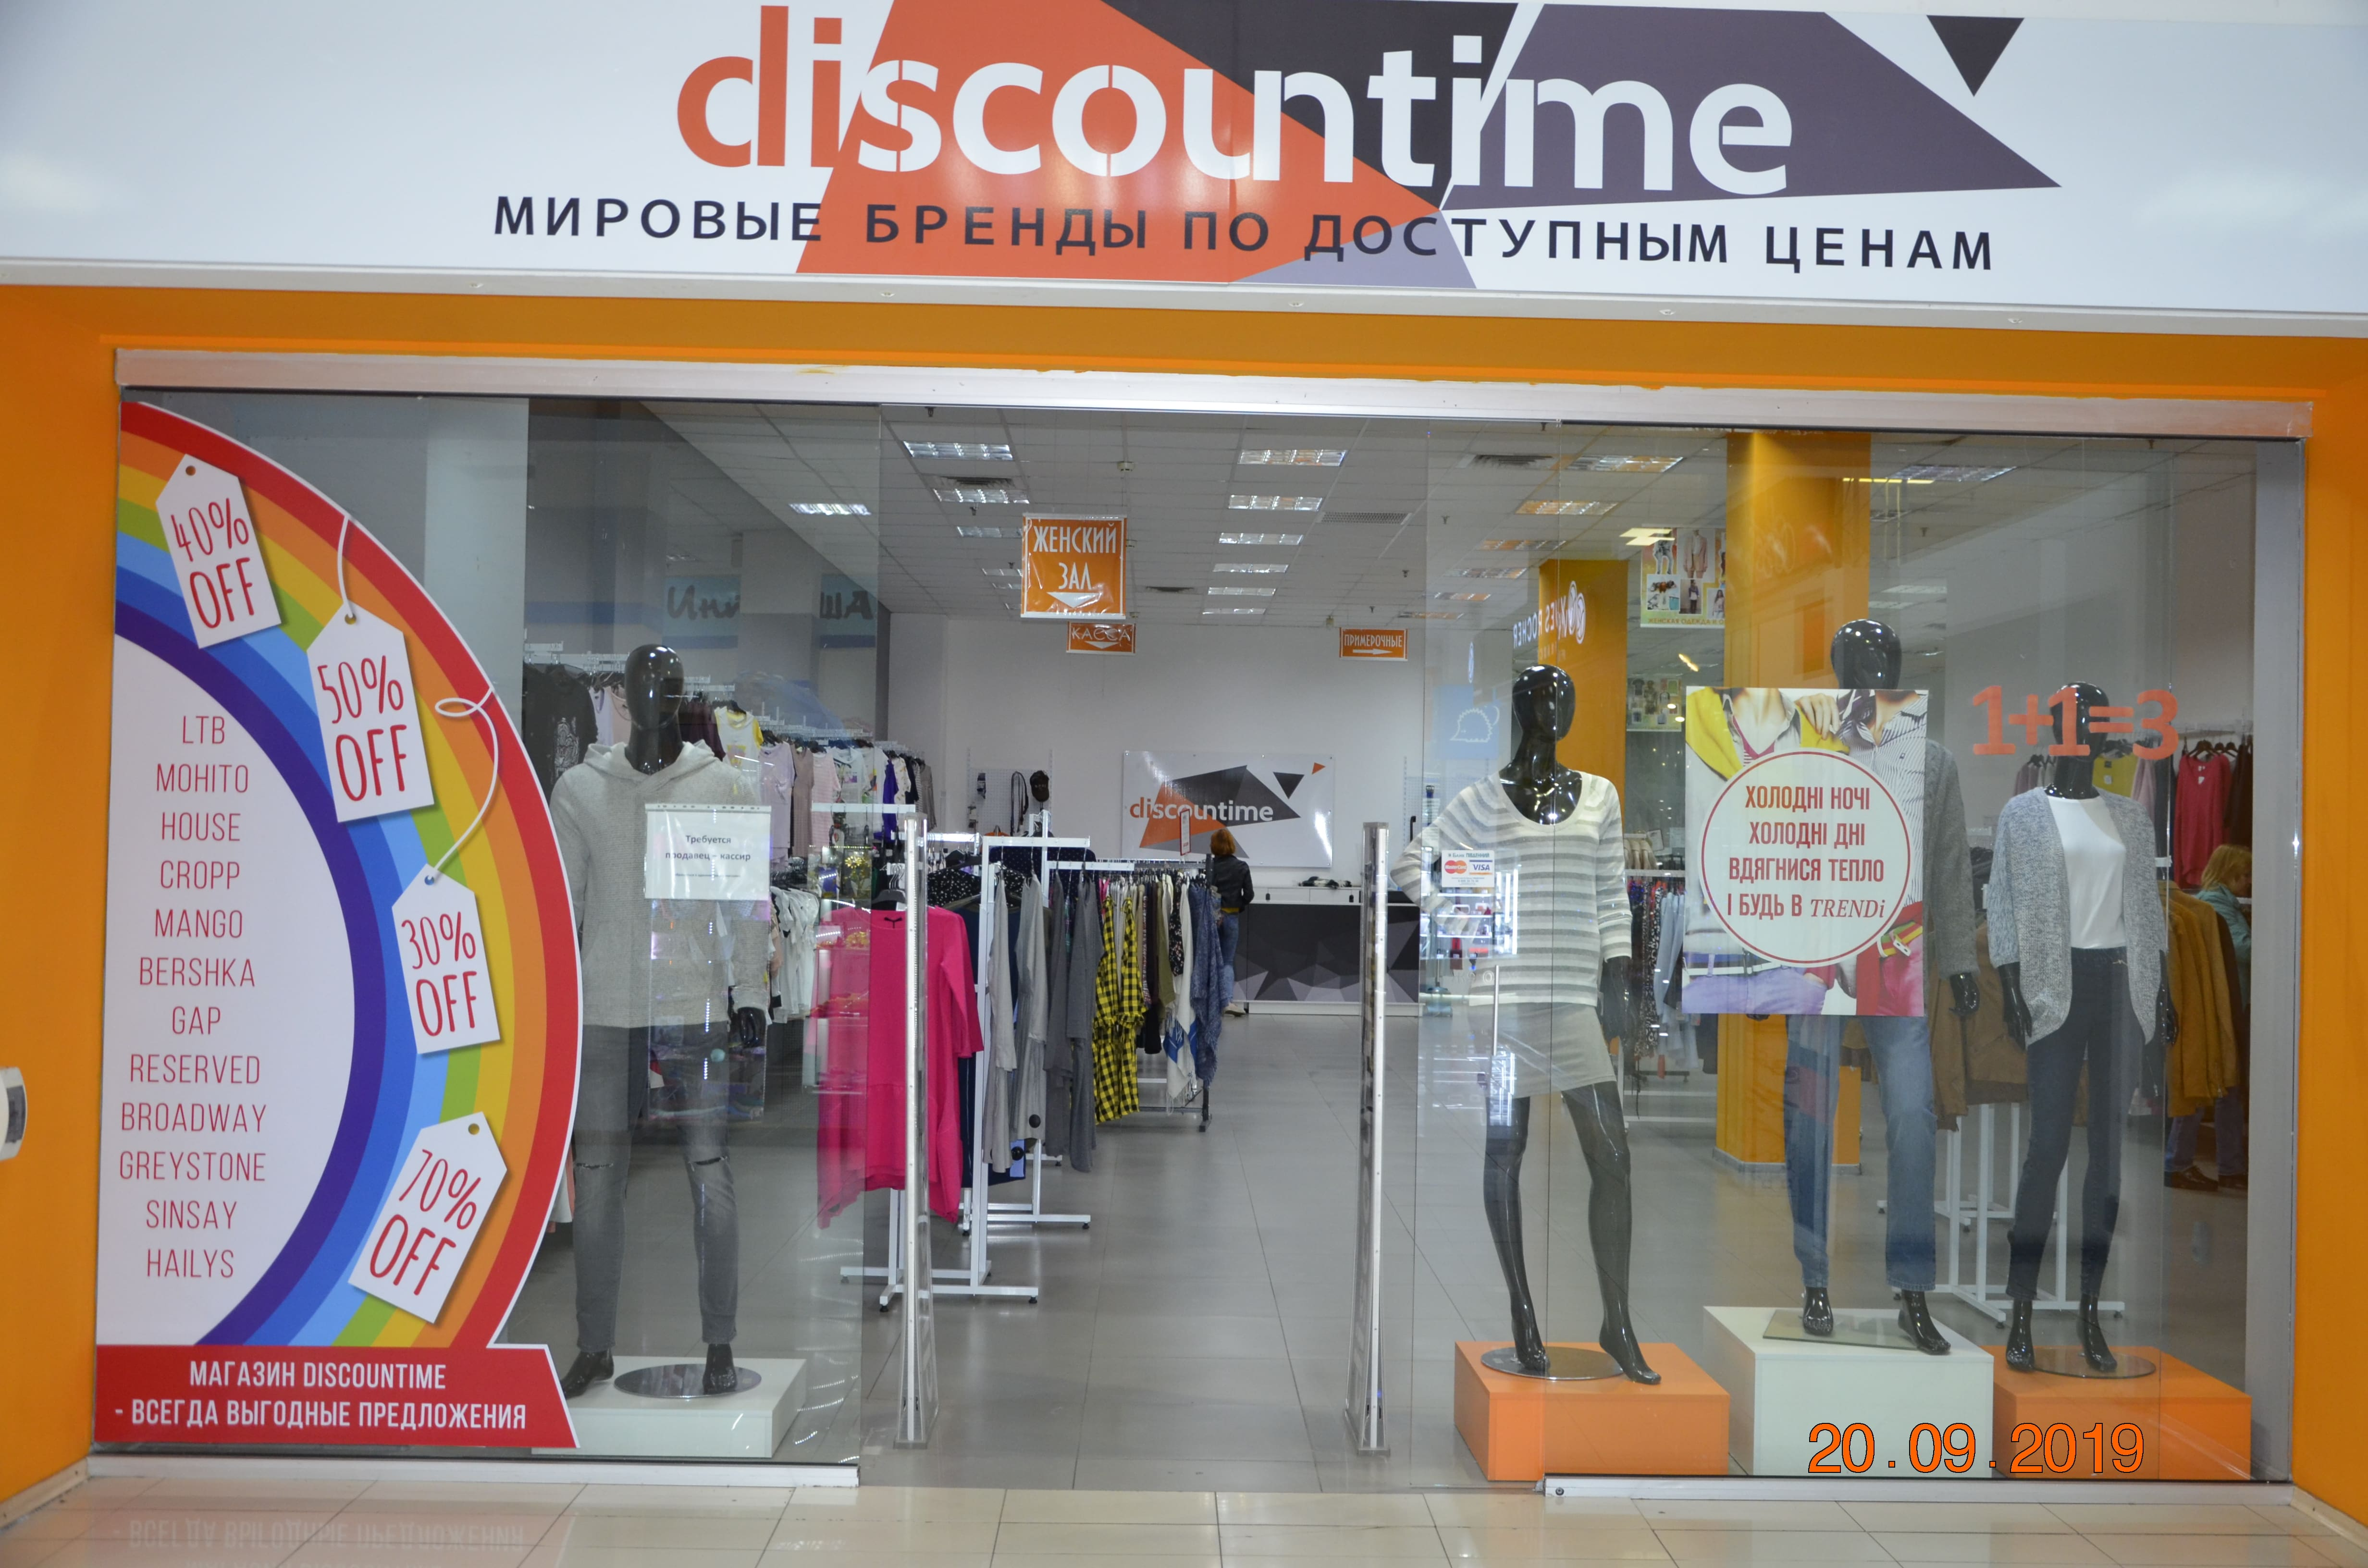 Discountime 1